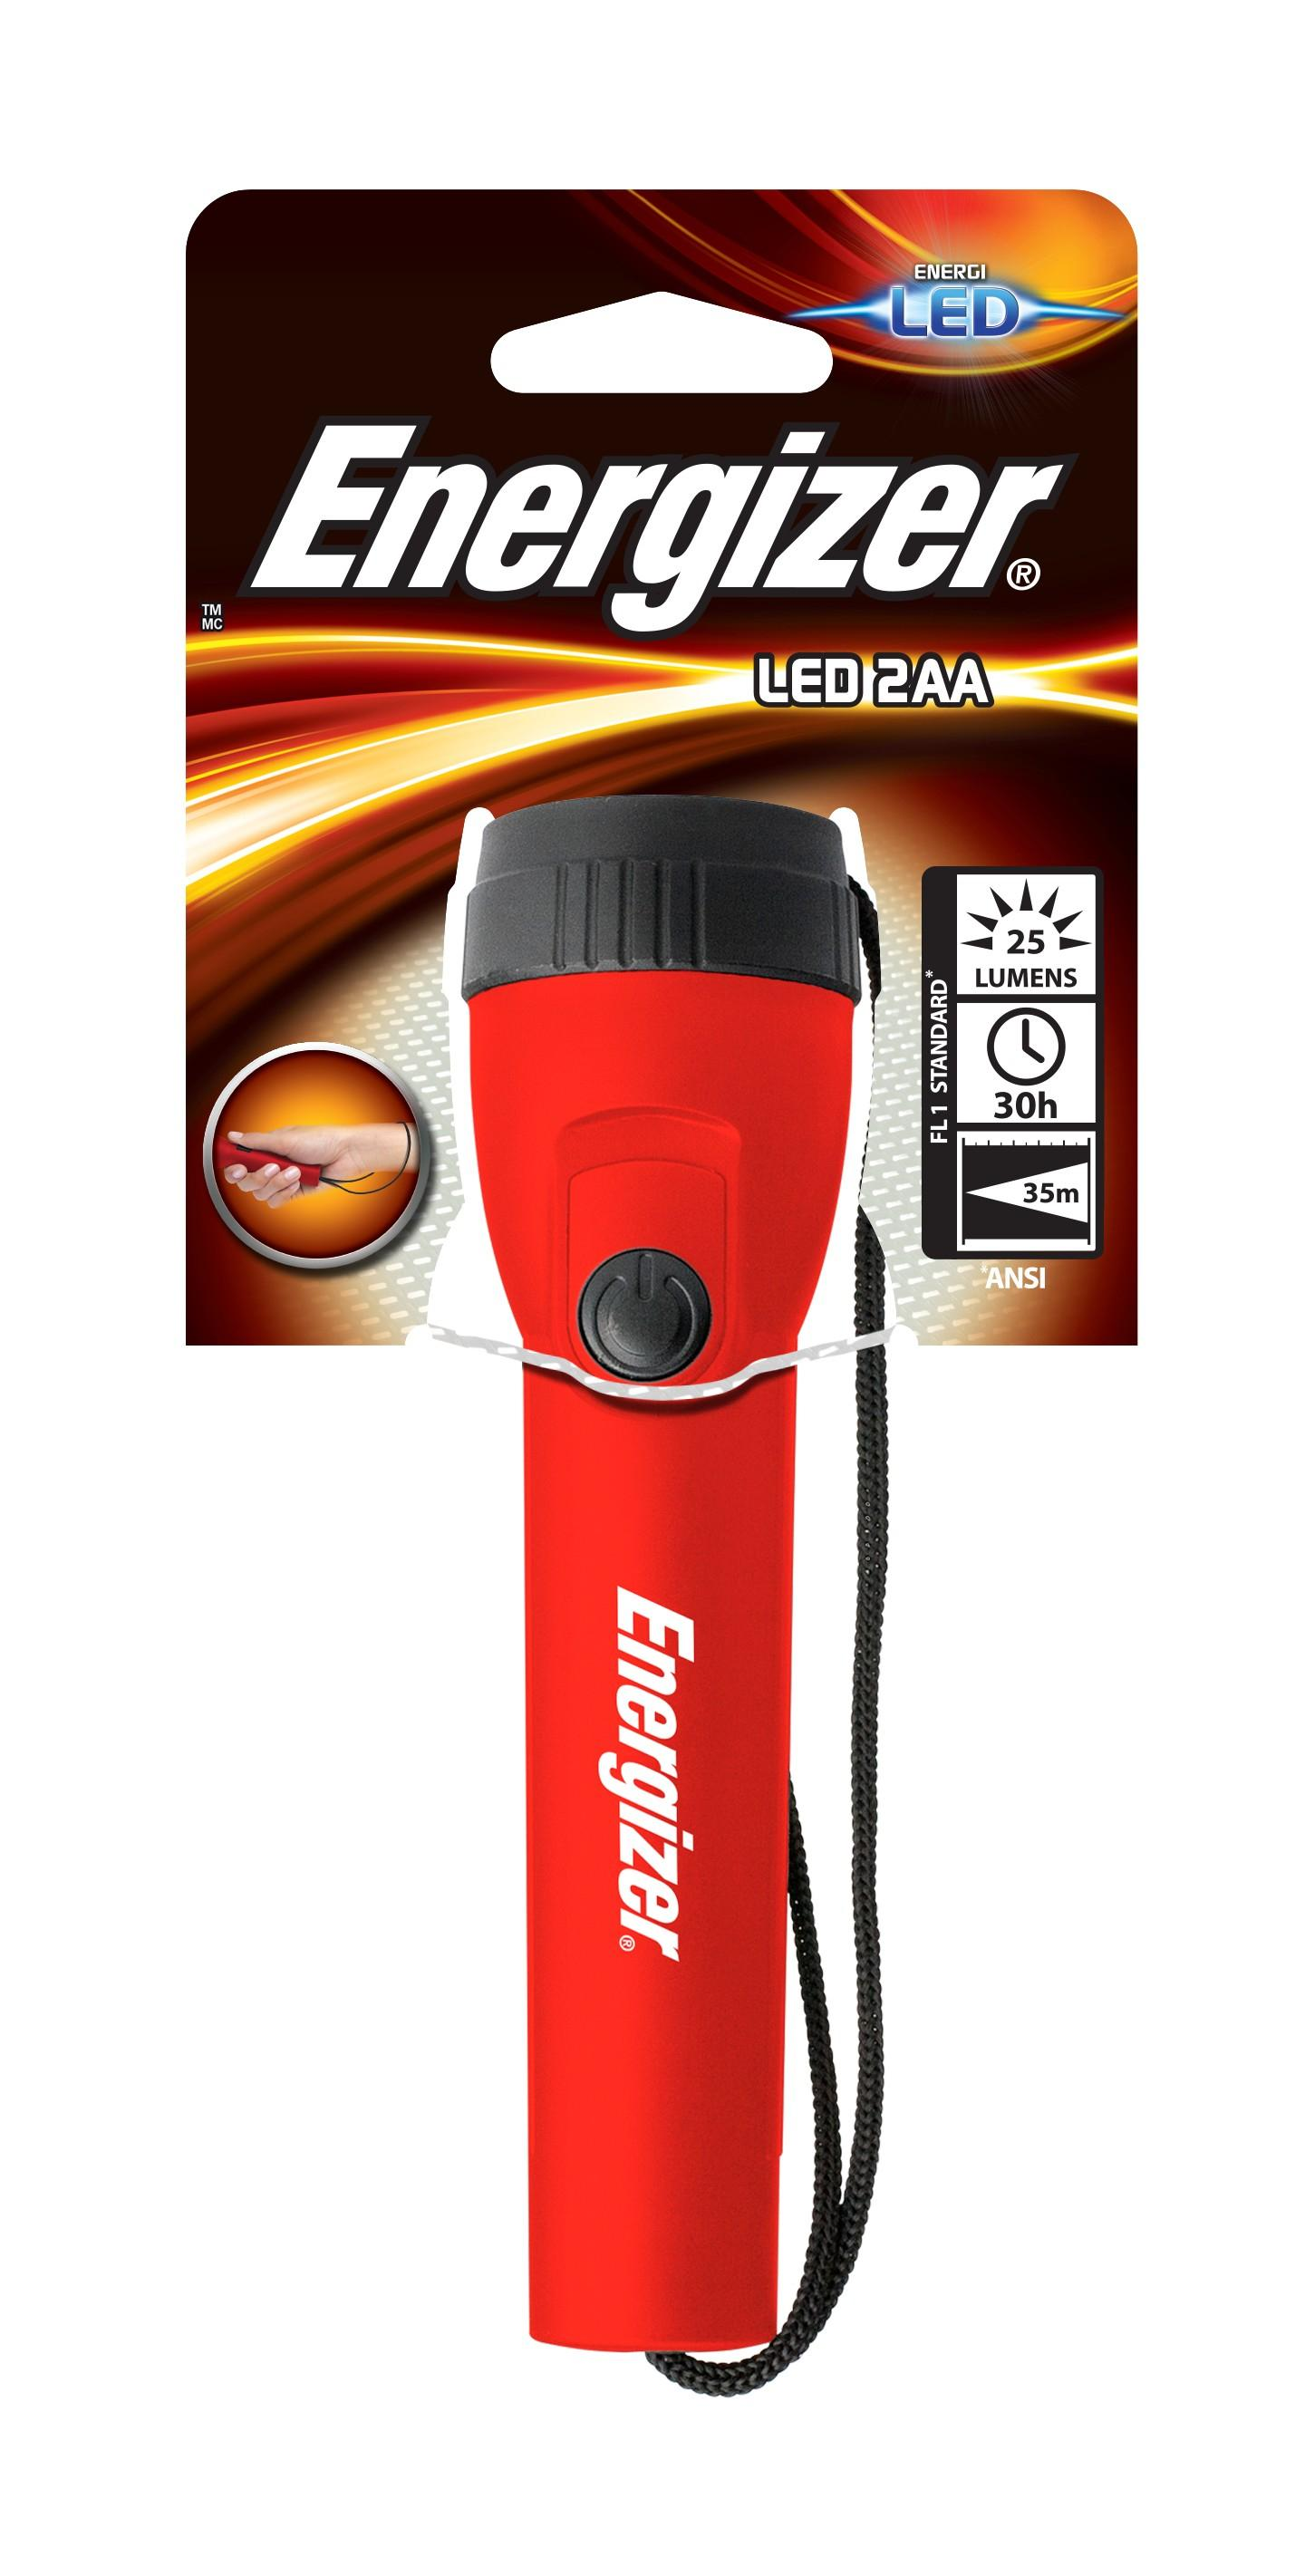 Energizer Light 2AA Rosso Torcia a mano LED